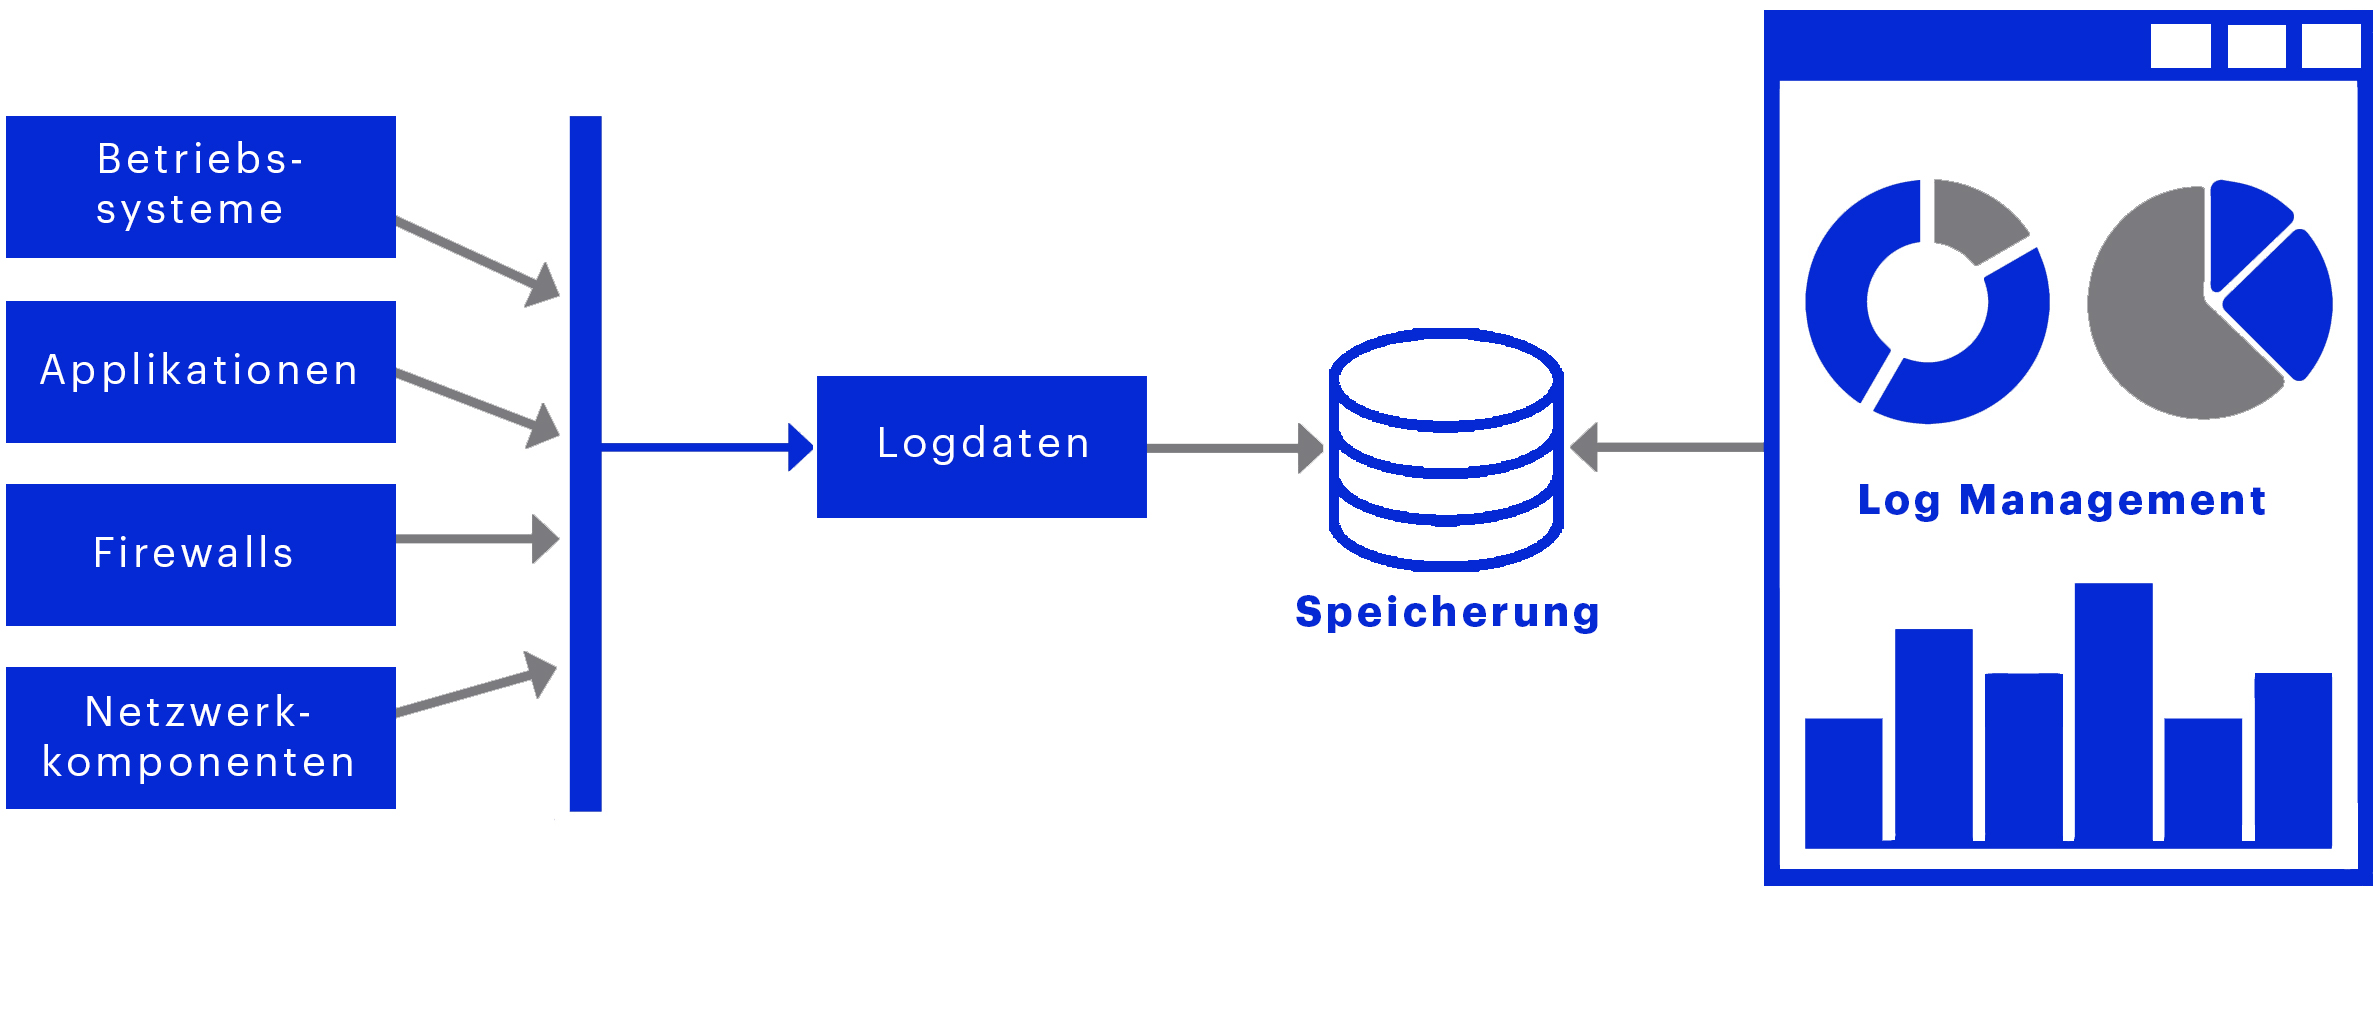 Log Management, Grafik, Logdaten, matrix technology AG